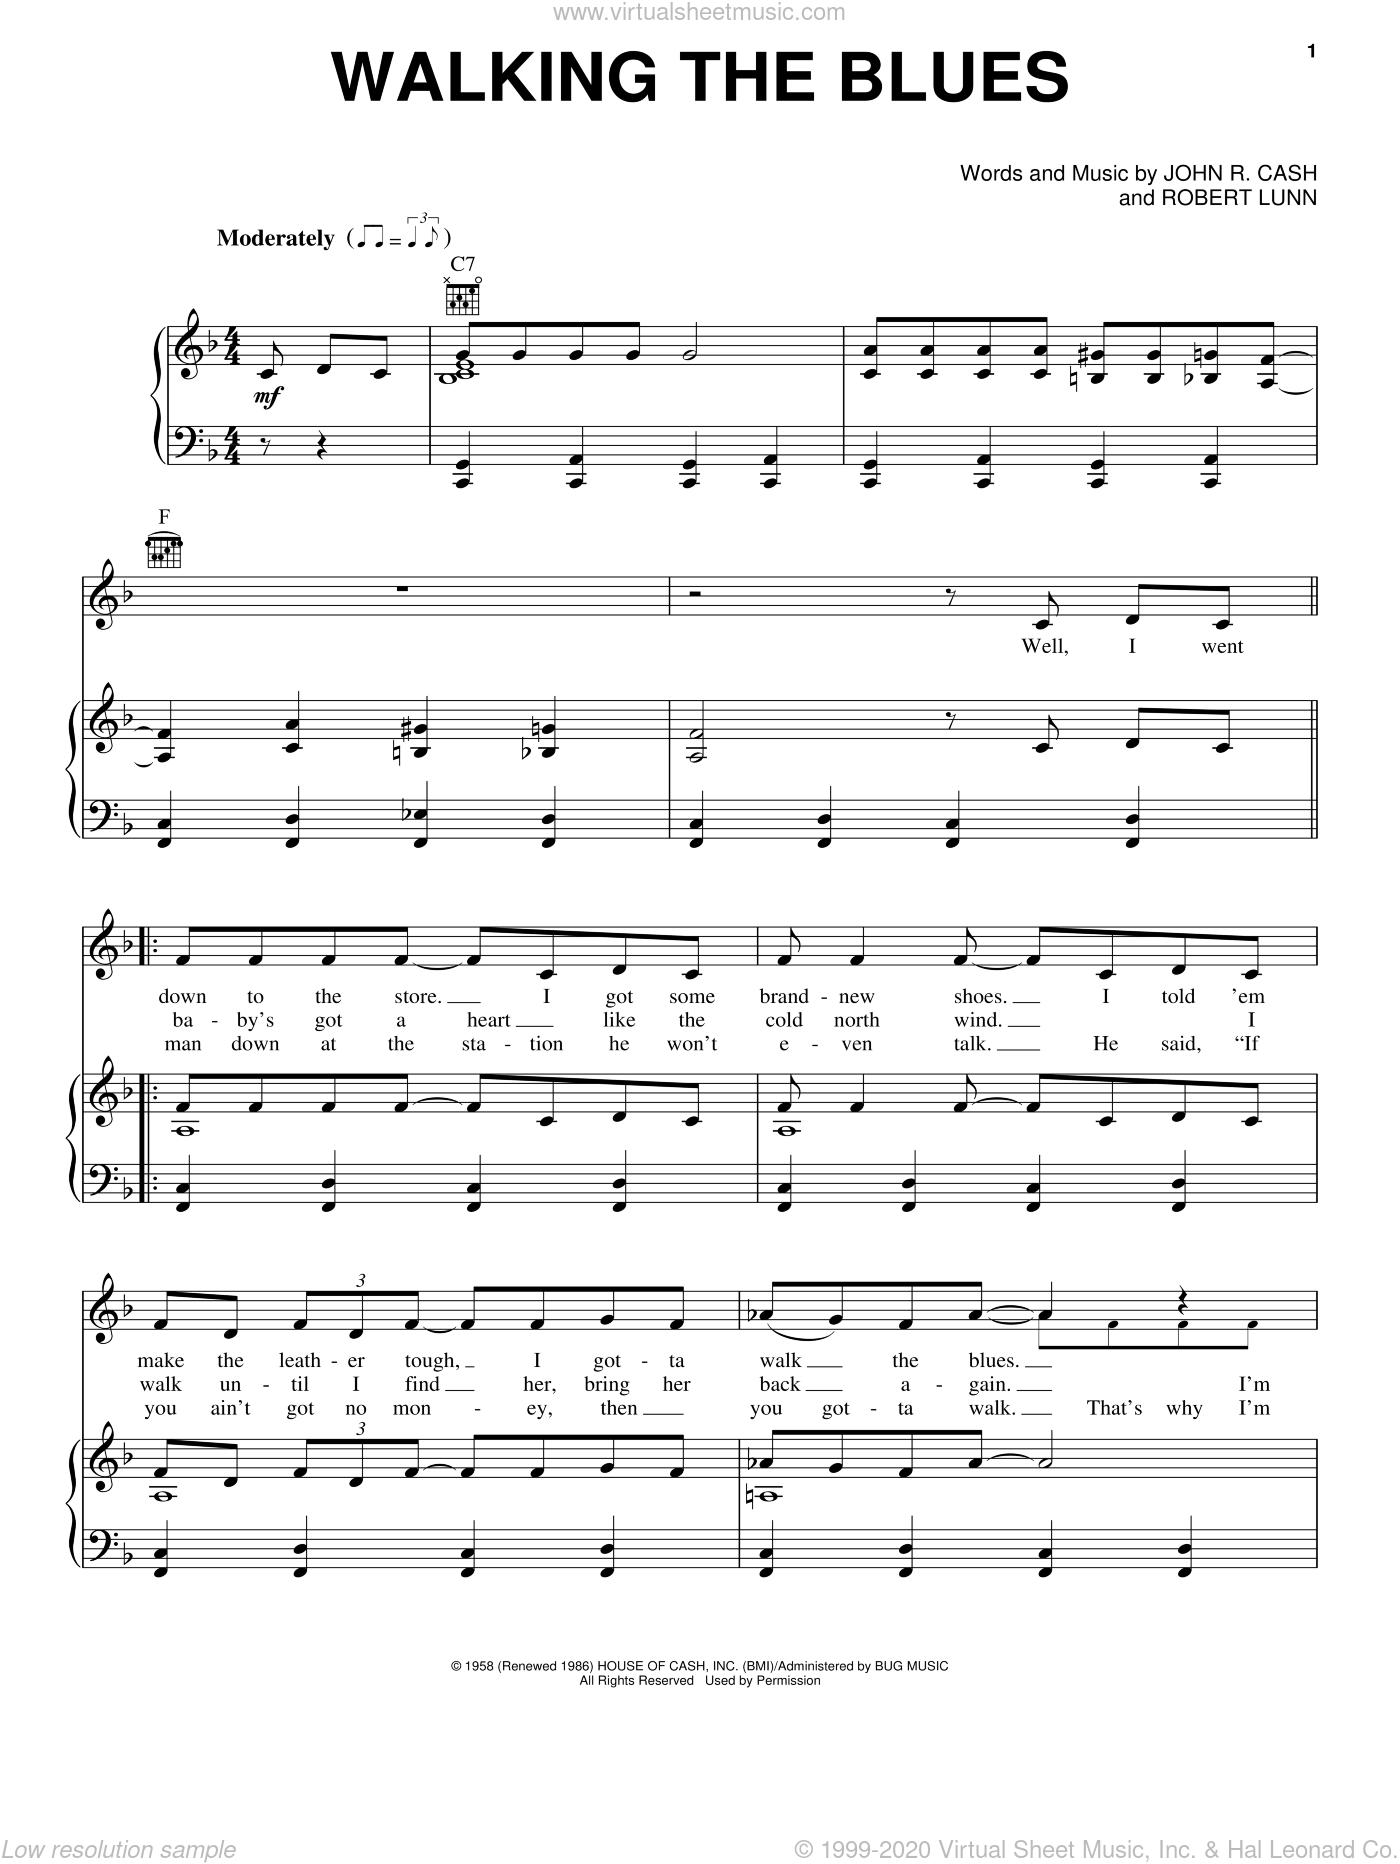 Walking The Blues sheet music for voice, piano or guitar by Robert Lunn